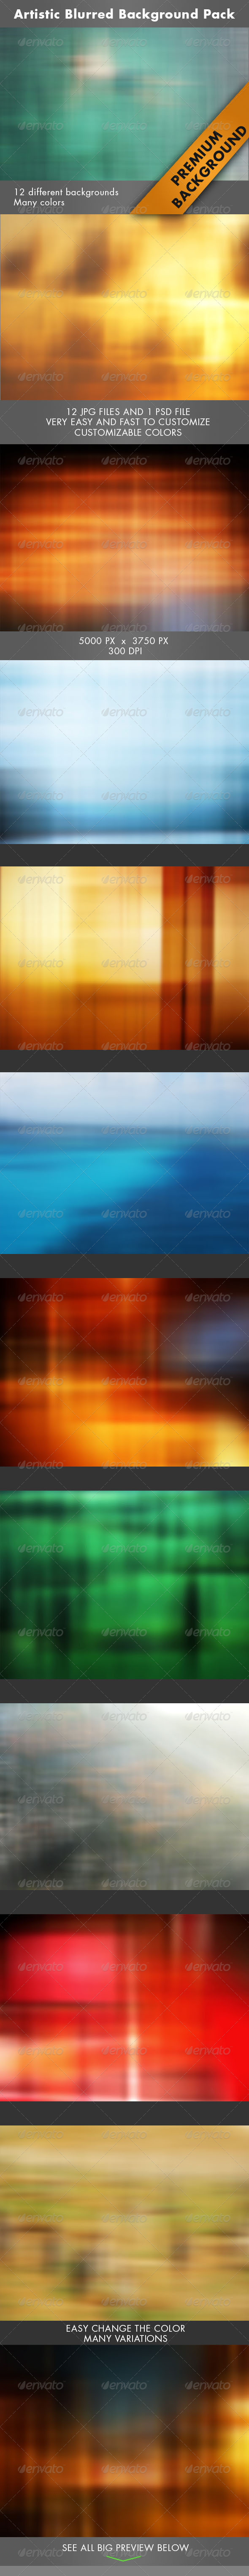 Artistic Blurred Background - Abstract Backgrounds